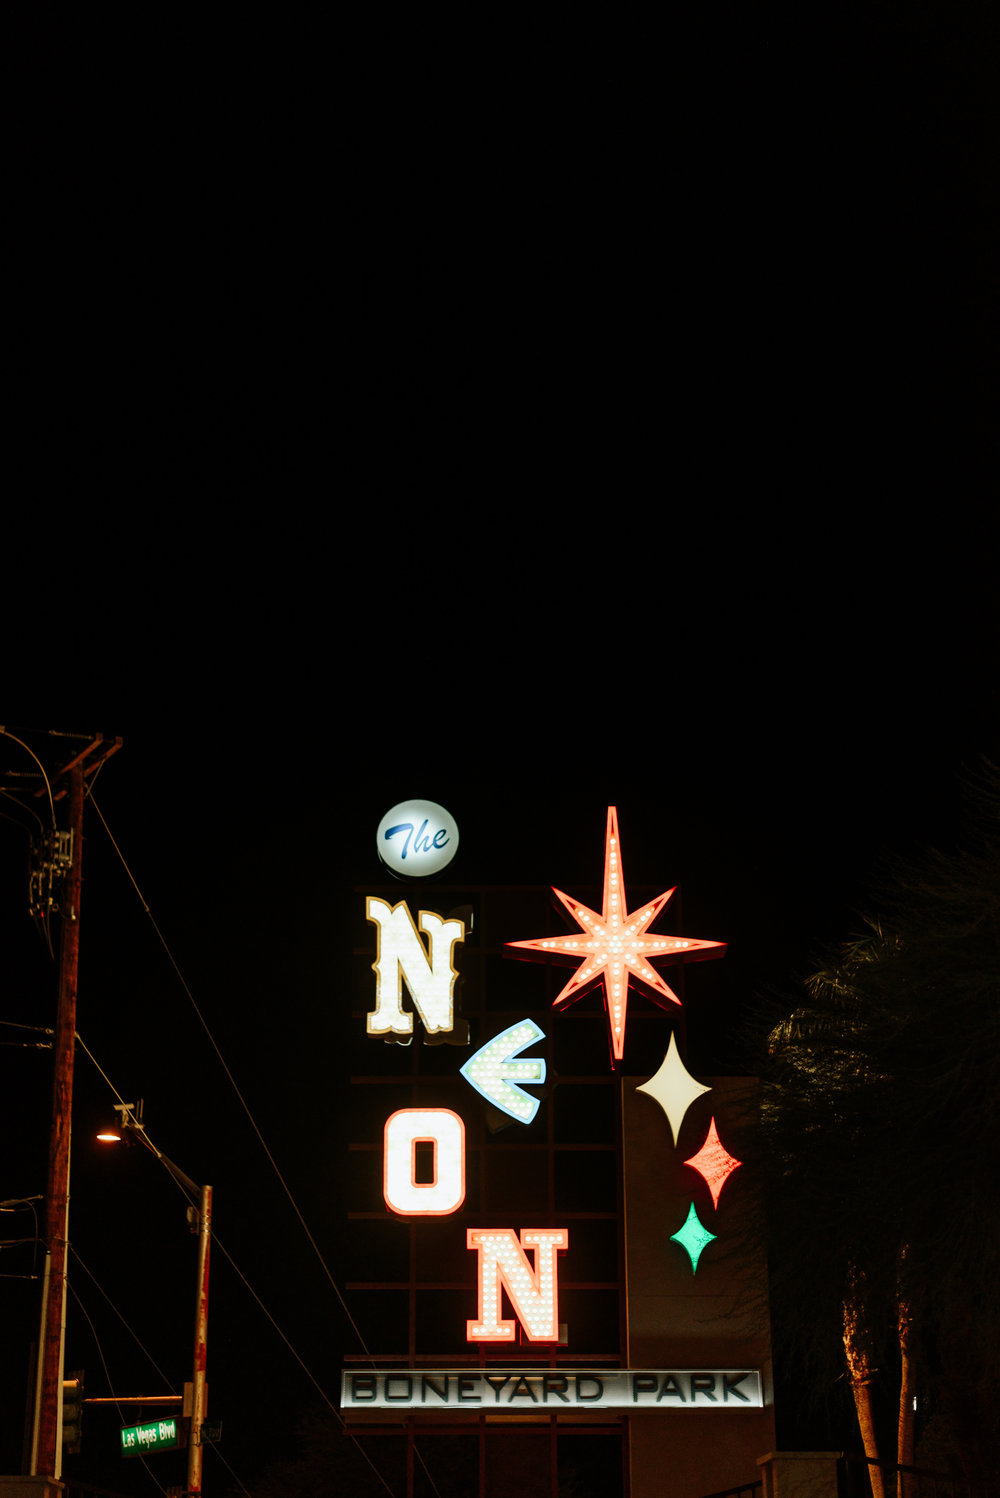 Neon-Museum-Wedding-Las-Vegas-Nevada-Golden-Nugget-Photography-by-V-Ally-and-Dan-7365.jpg